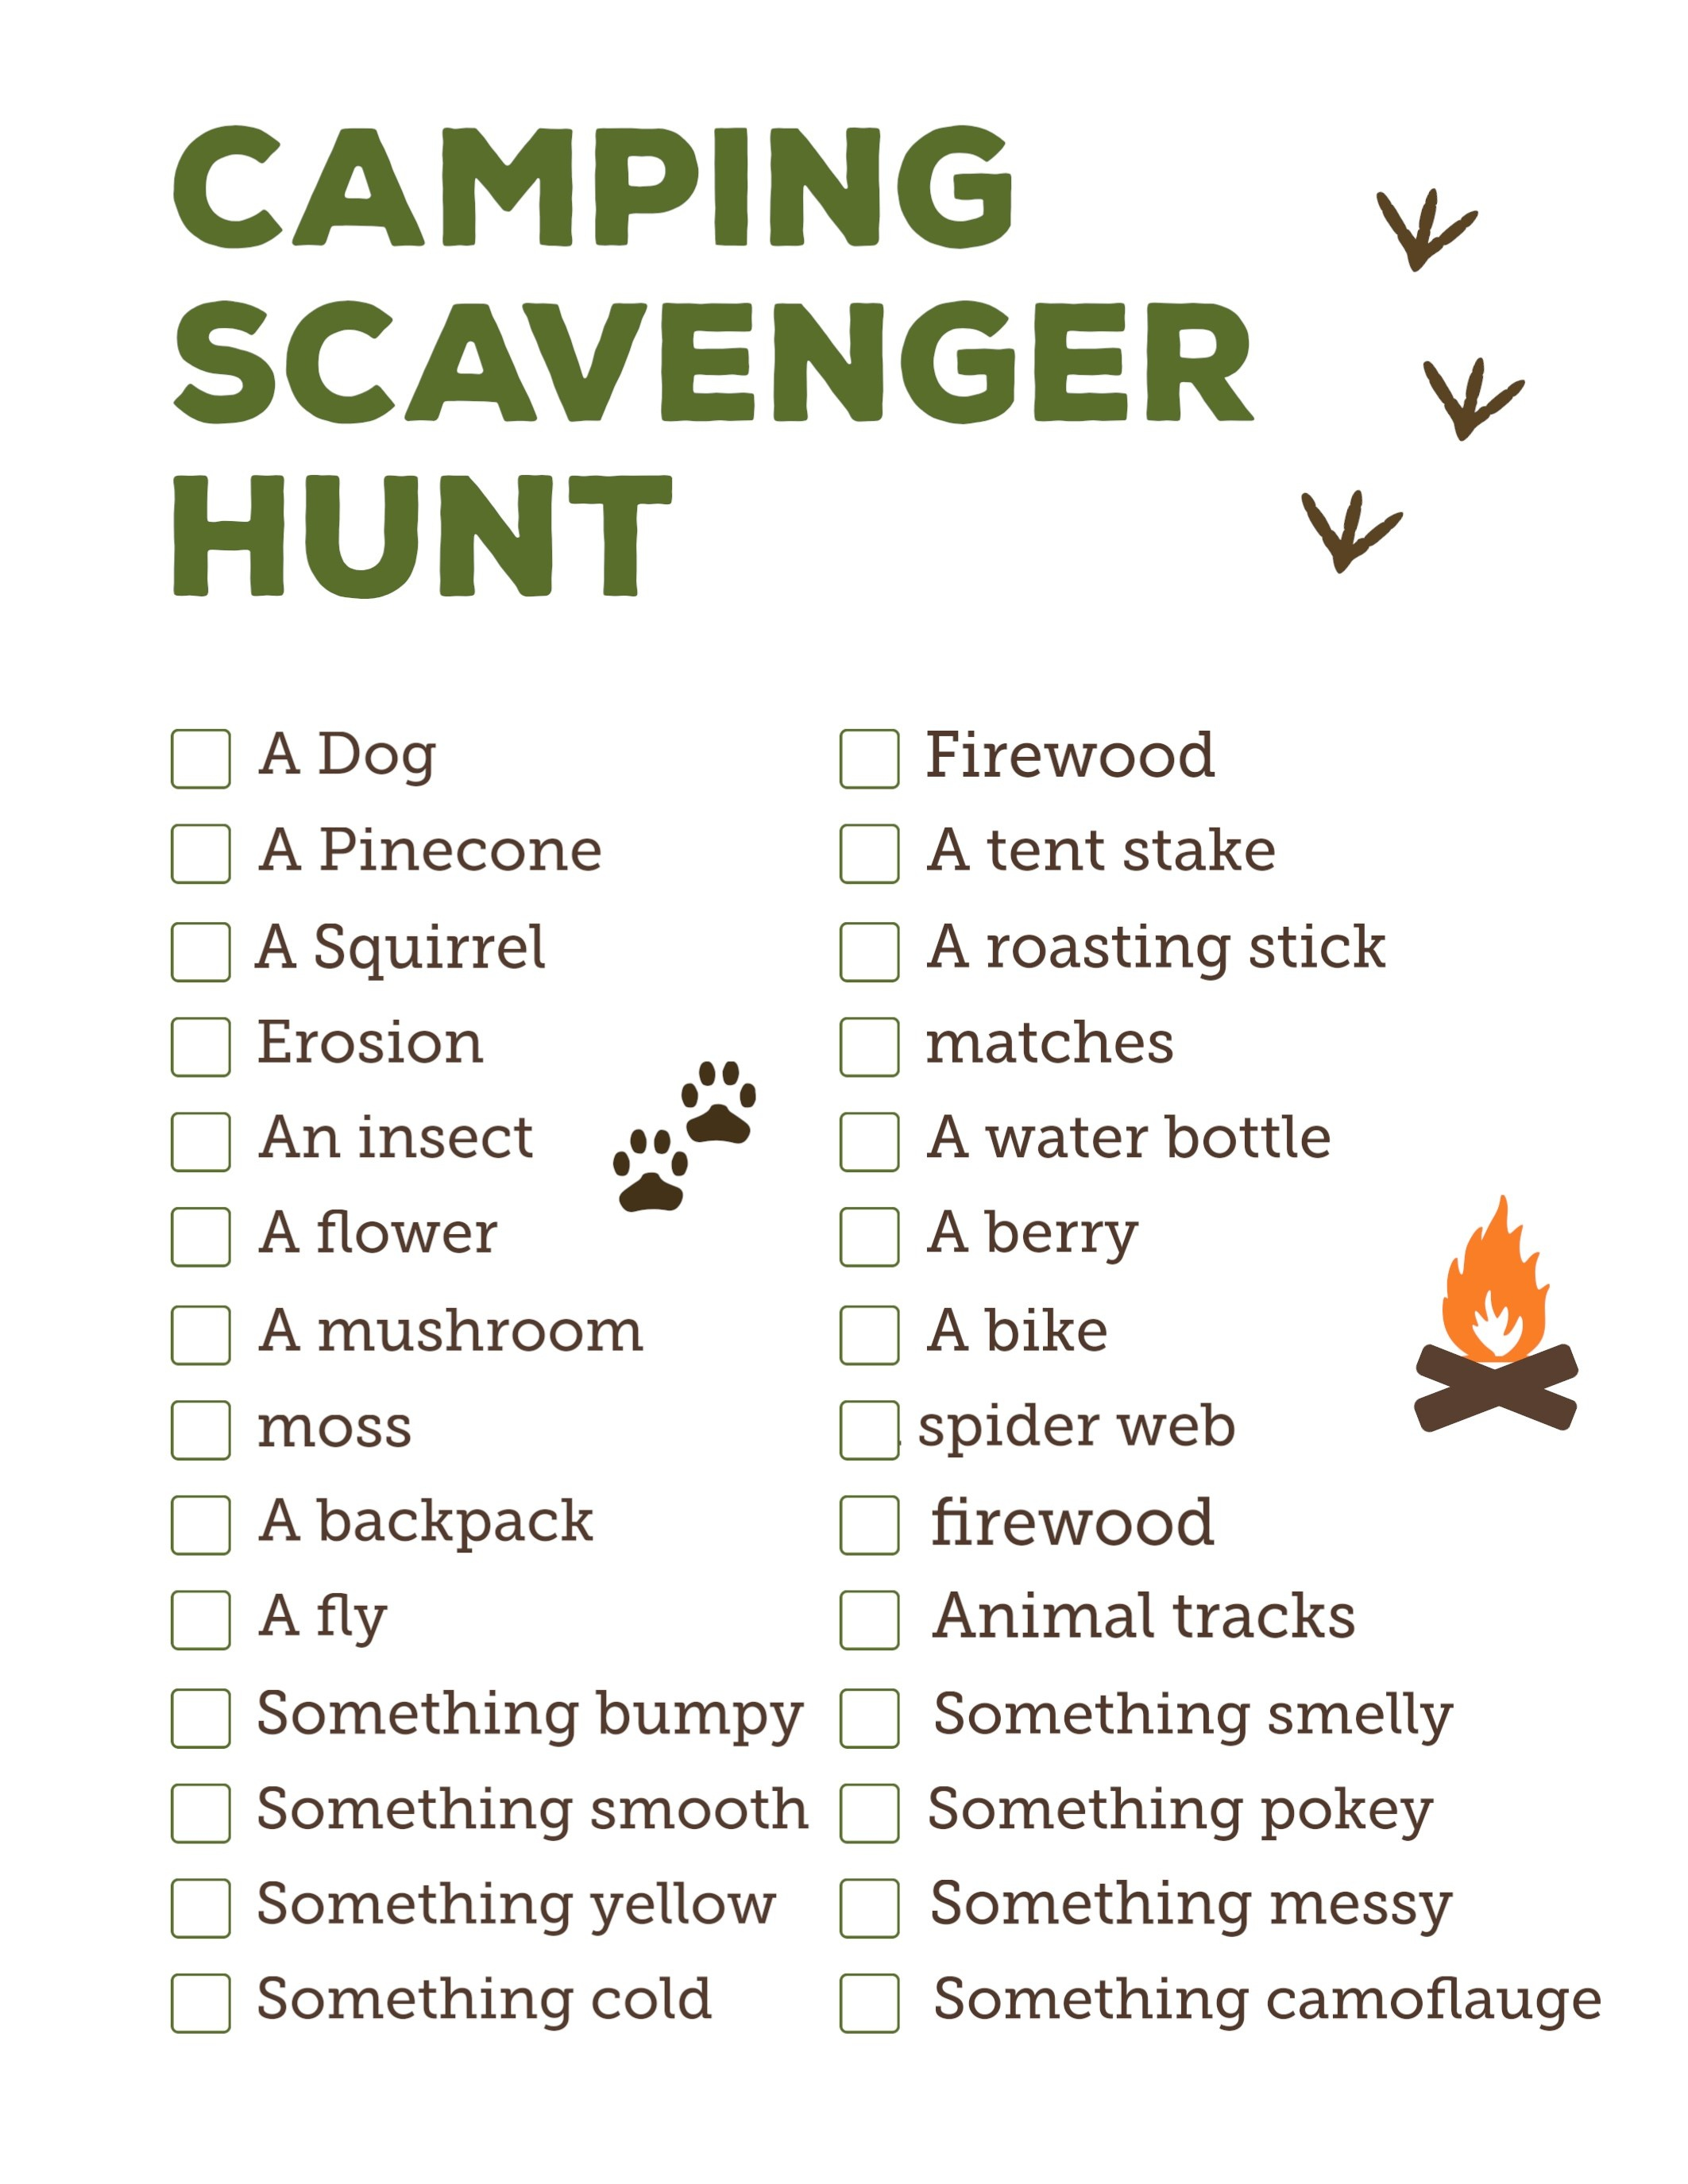 Camping Scavenger Hunt Printable - Paper Trail Design - Free Printable Scavenger Hunt For Kids